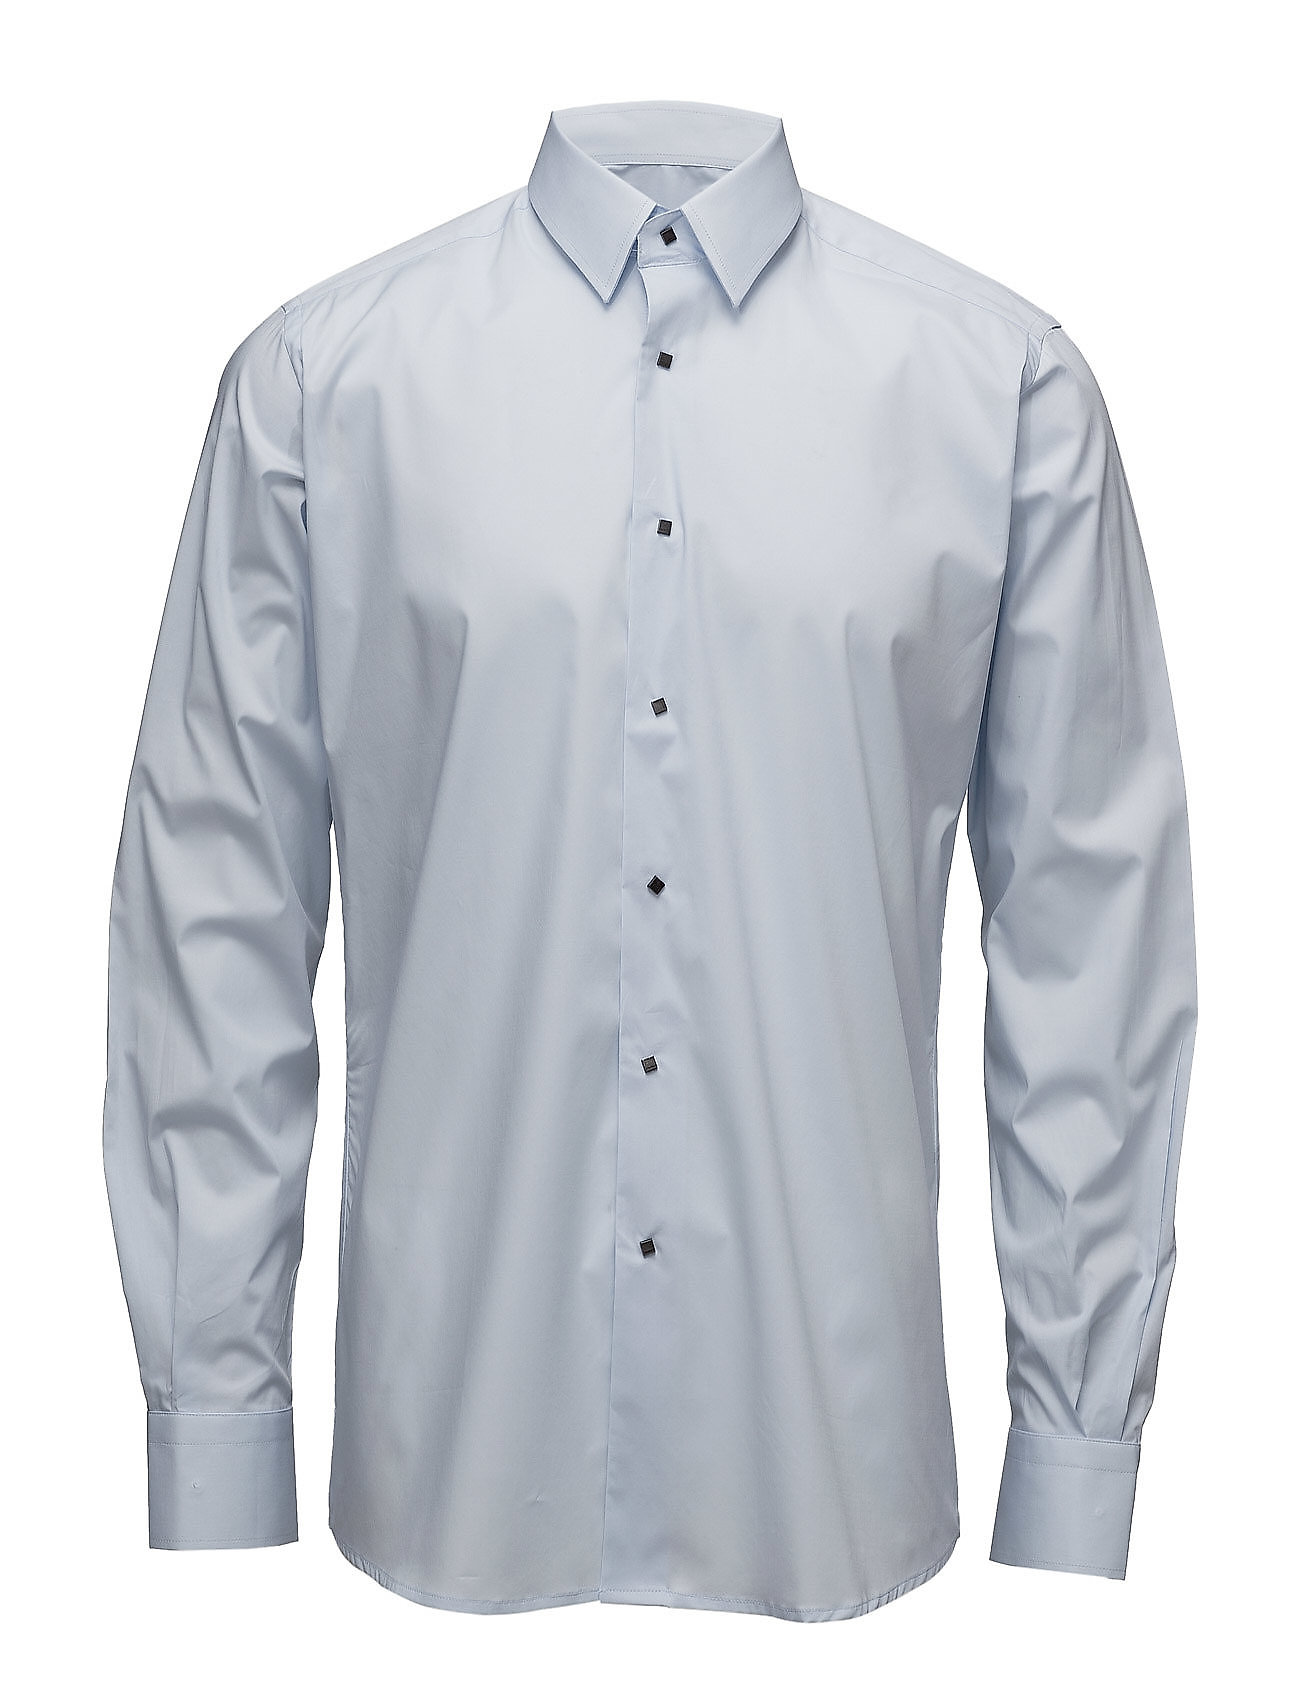 Lagerfeld SHIRT SLIM - 620-BLUE